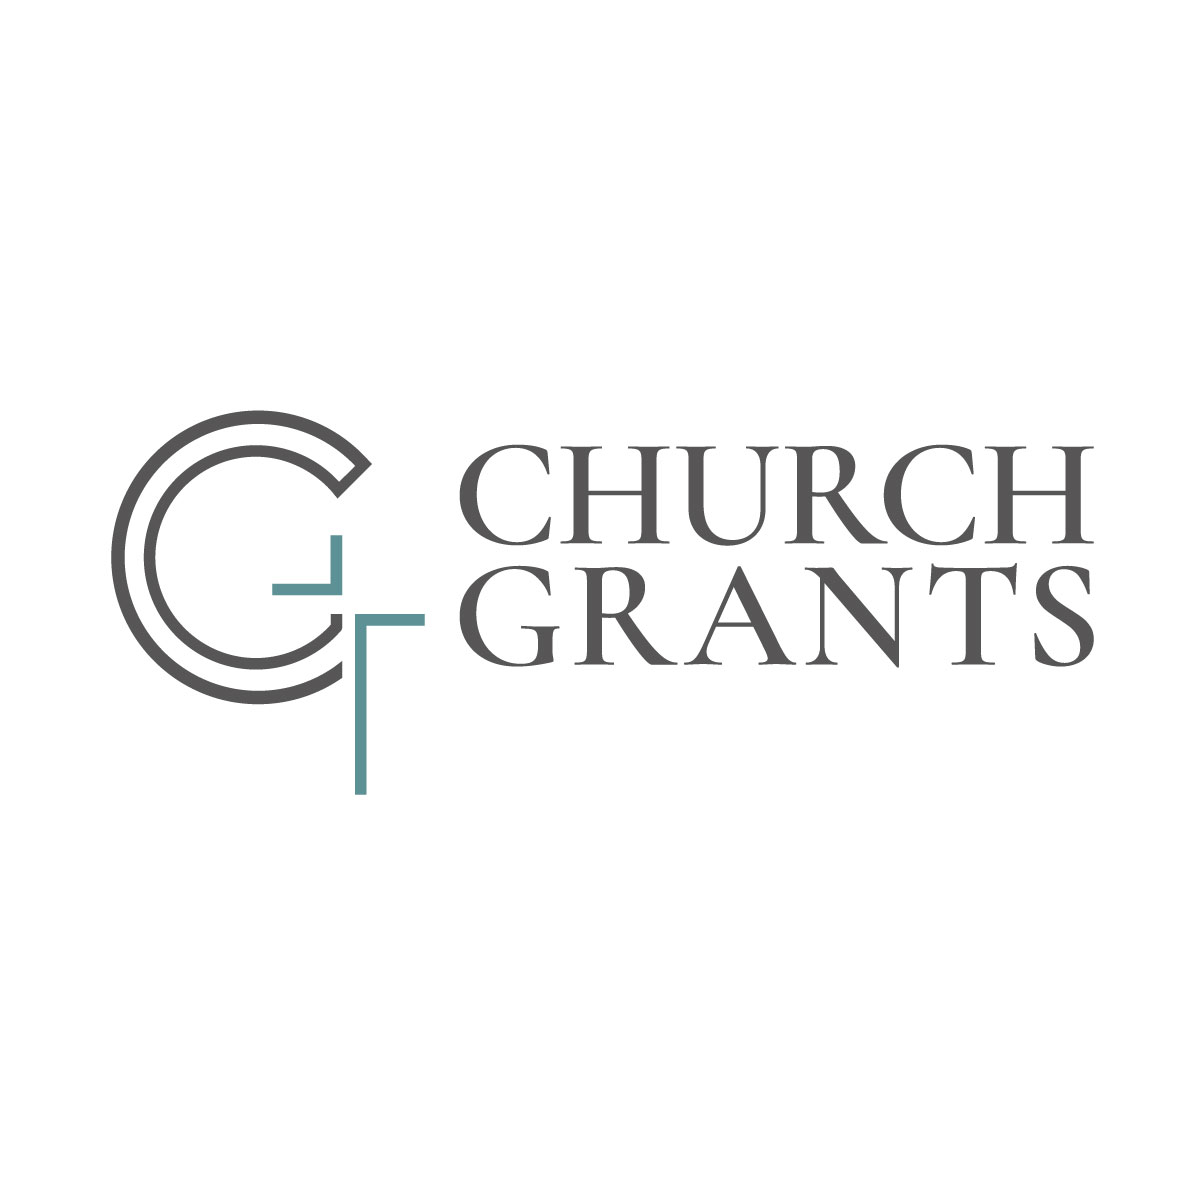 Church Grants Logo Design - C G and cross